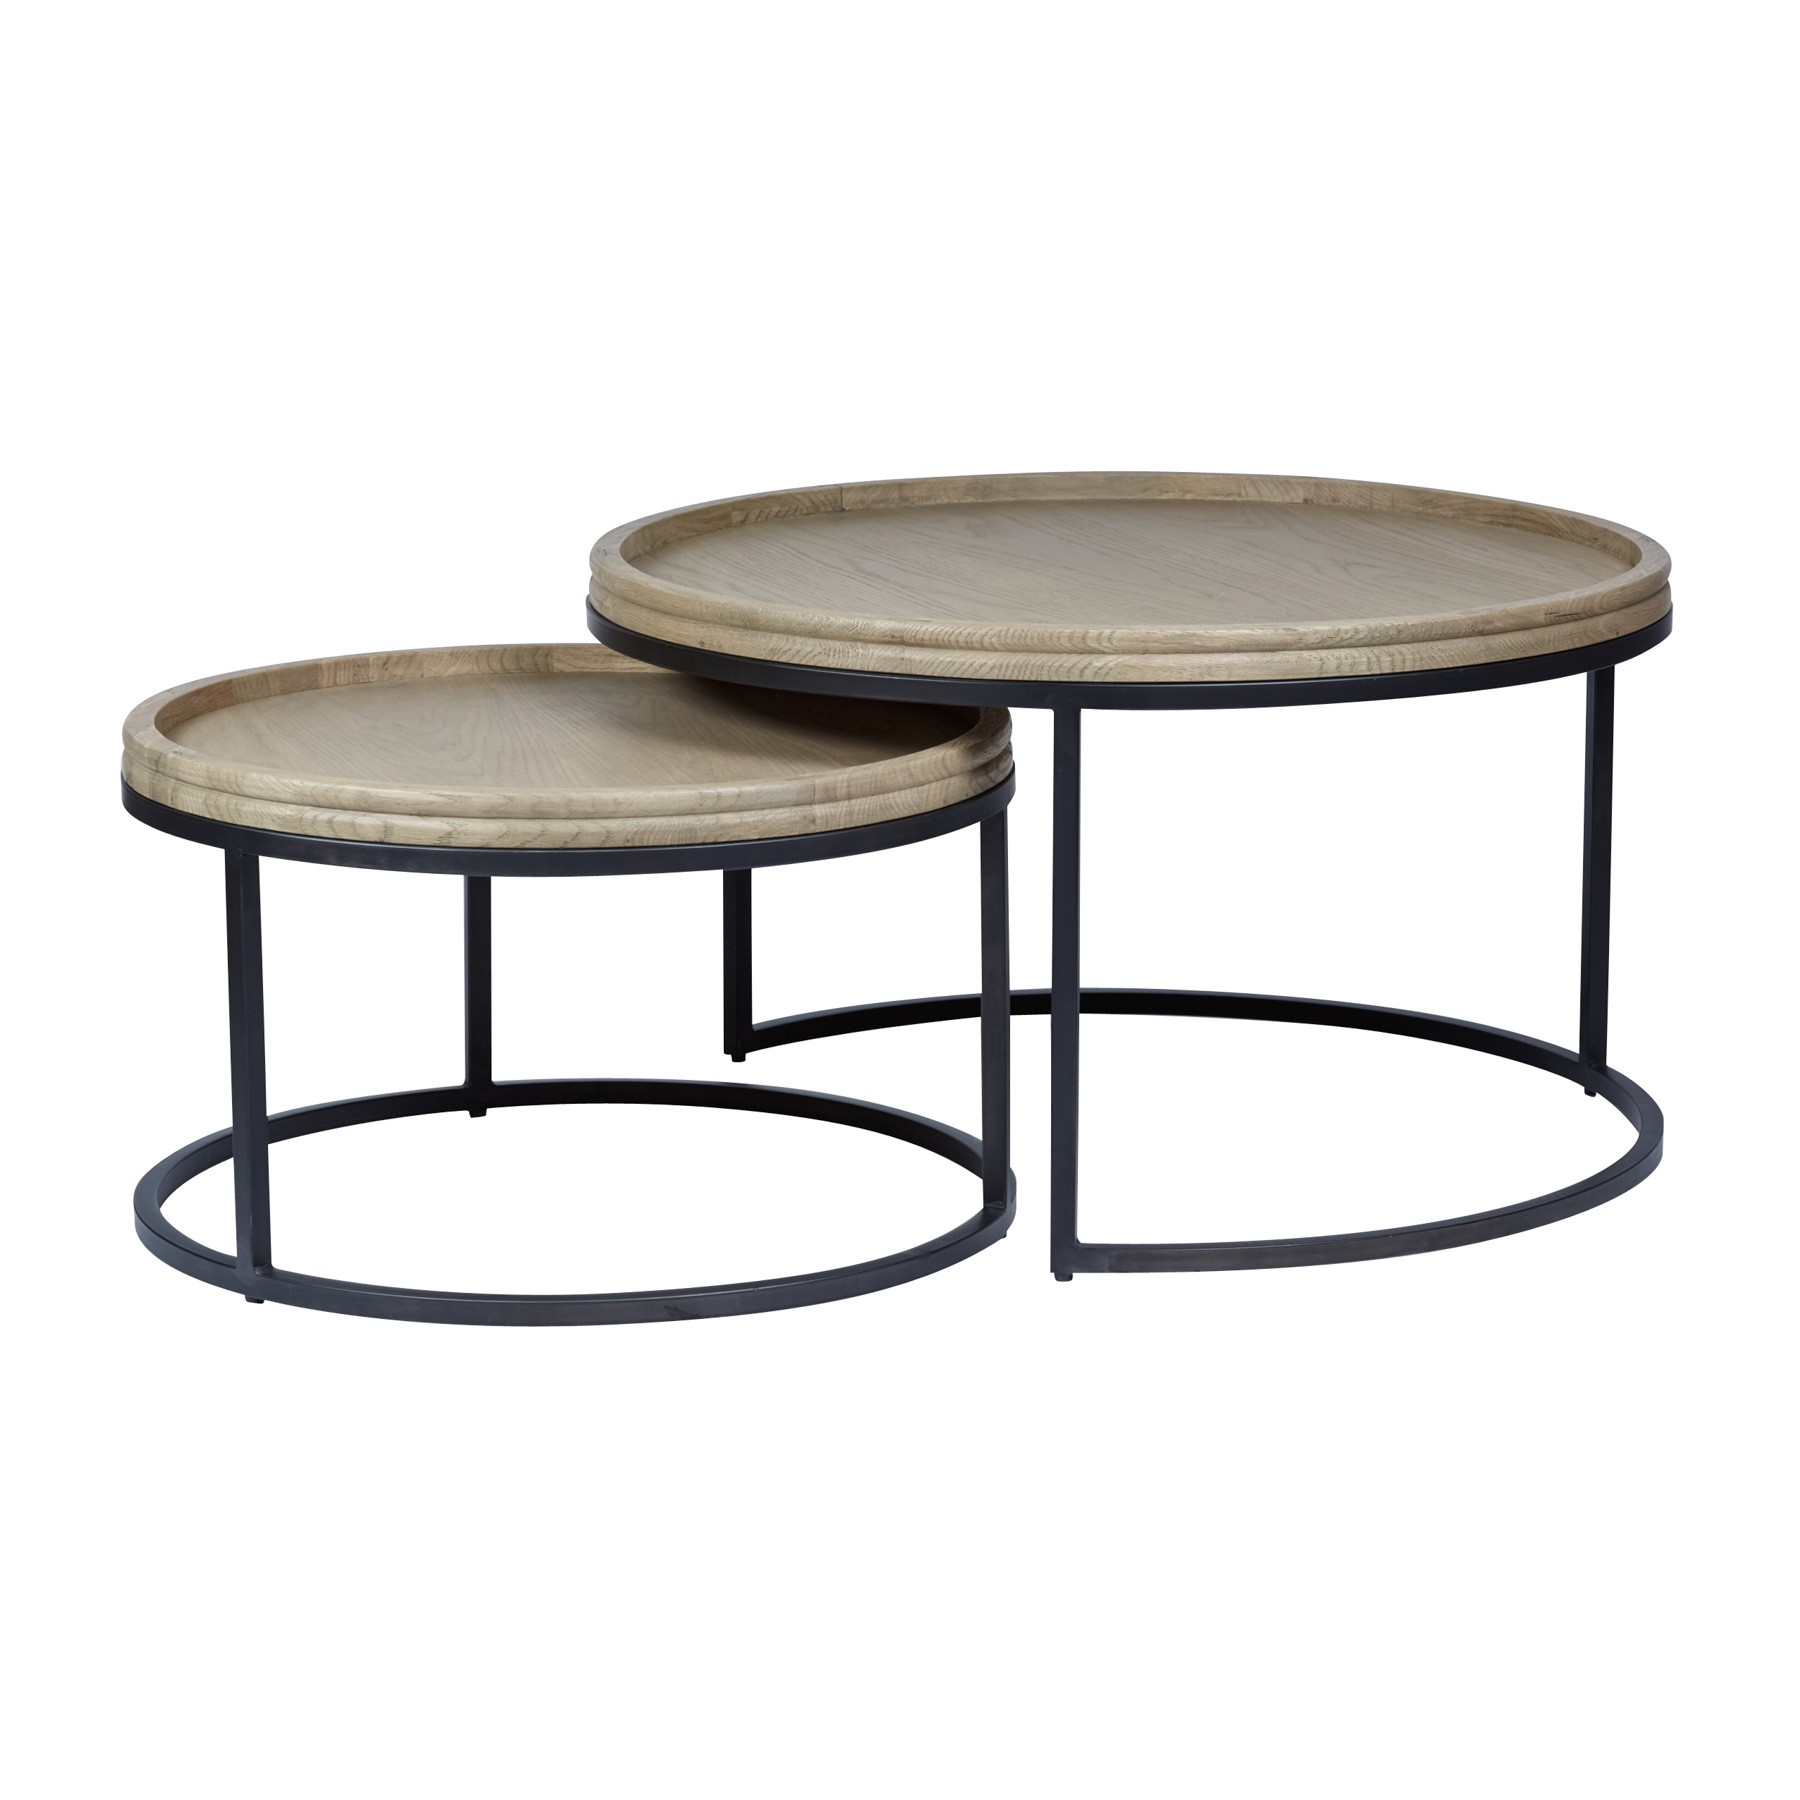 Alessandro 2 Piece Oak Topped Metal Round Nesting Coffee Table Set, 90cm